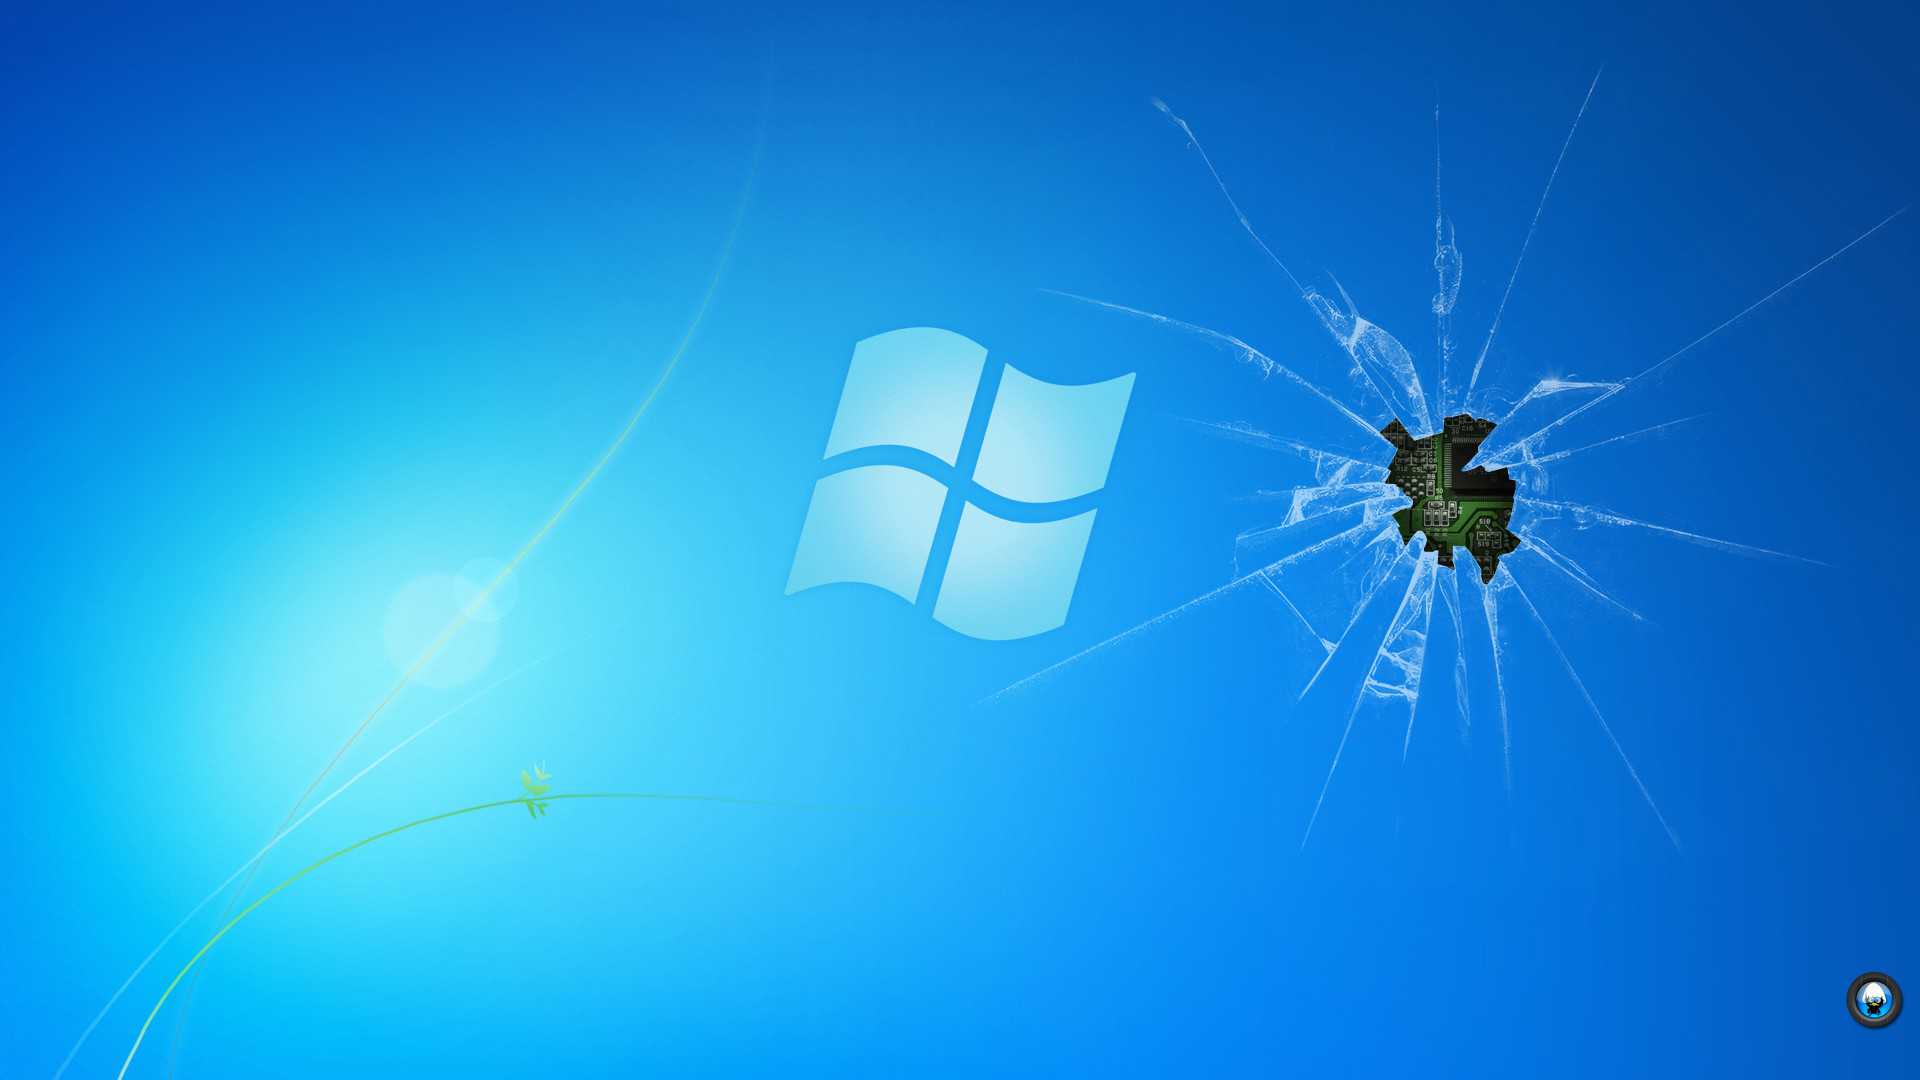 1920x1200 Realistic Cracked Screen Images